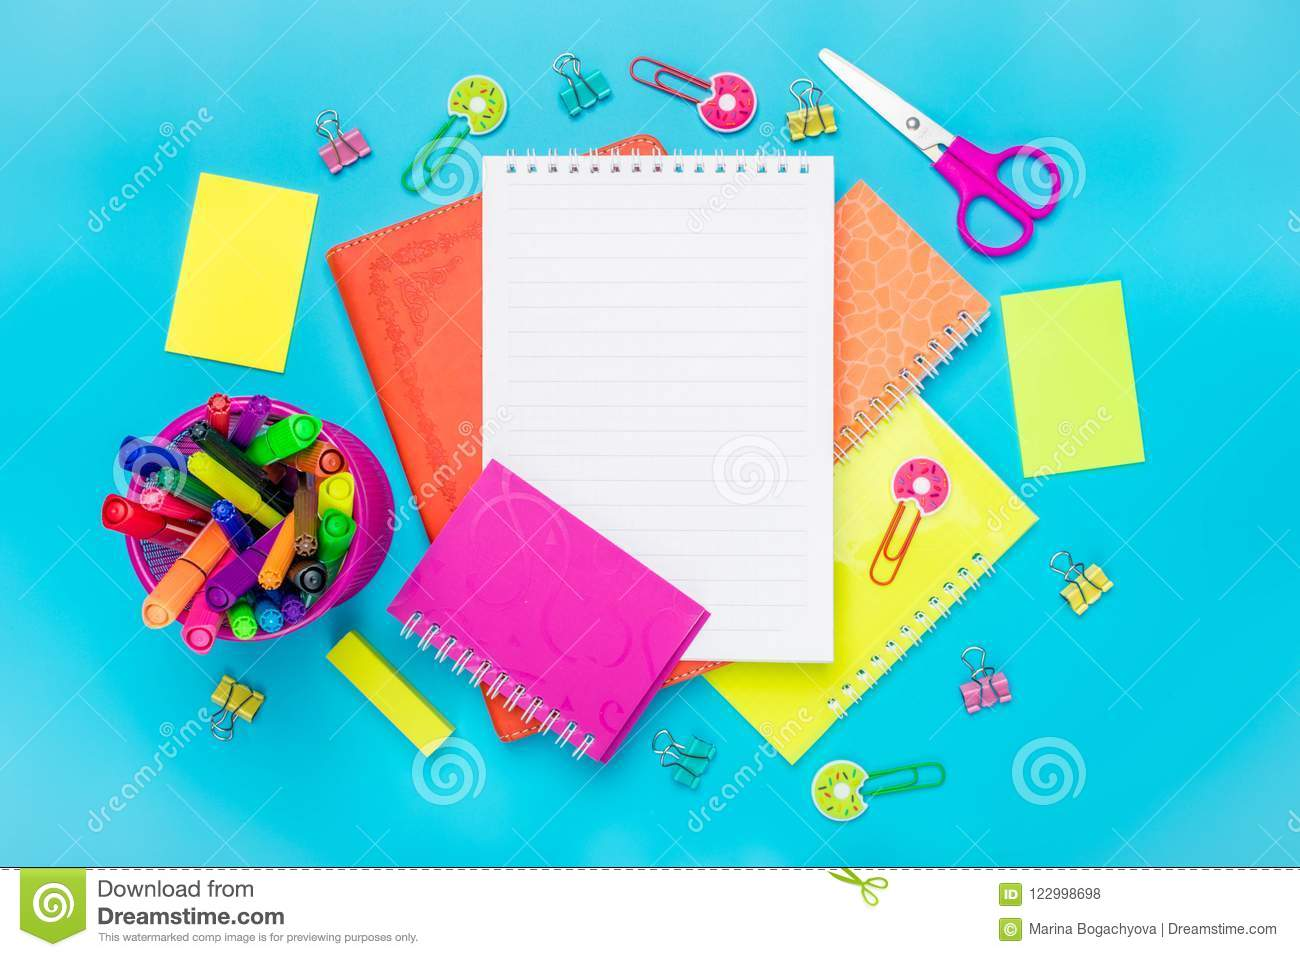 stationary back to school summer time creativity and education